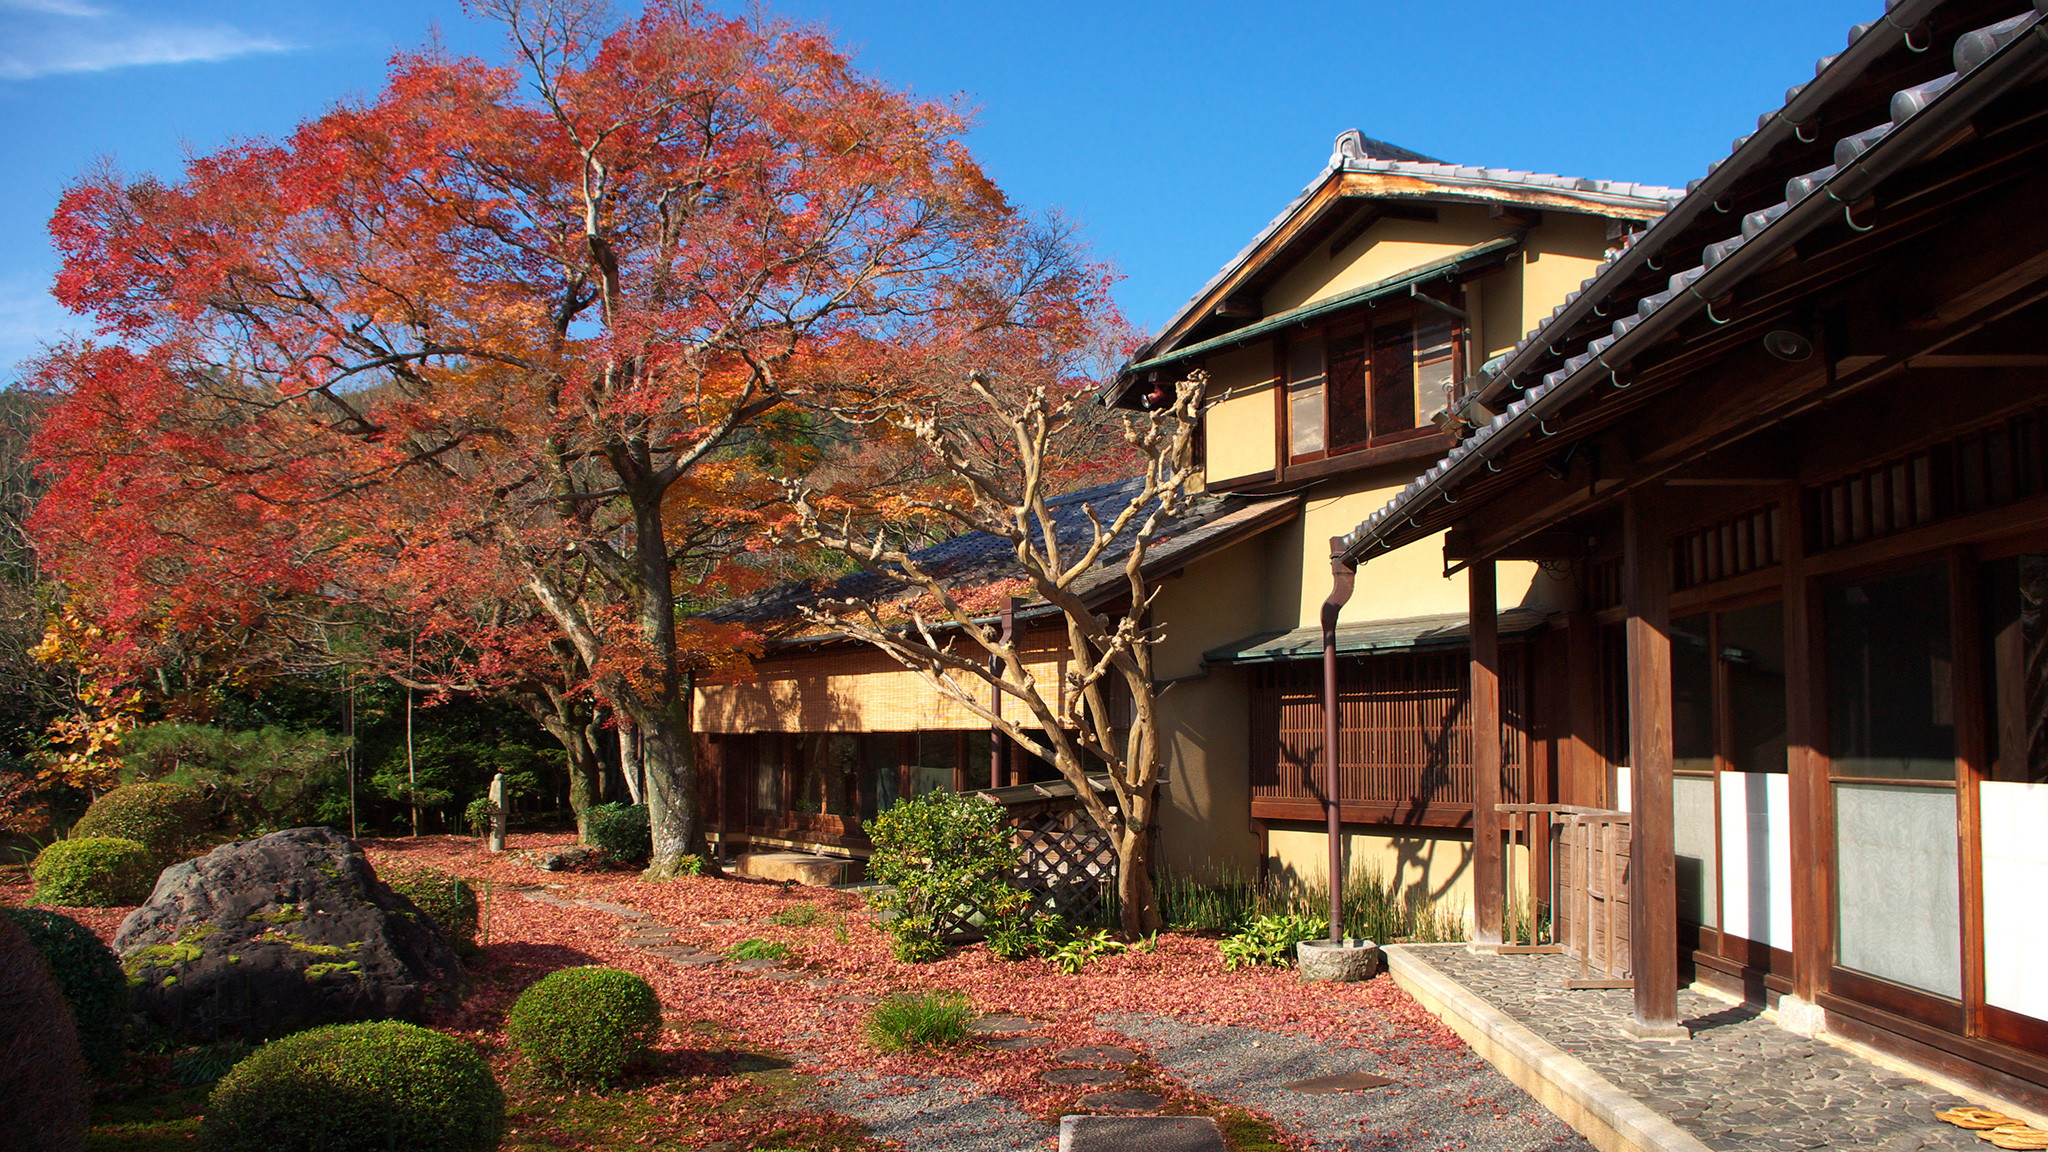 Why Foreign Buyers Are Seeking Worthless Wooden Homes In Kyoto Financial Times